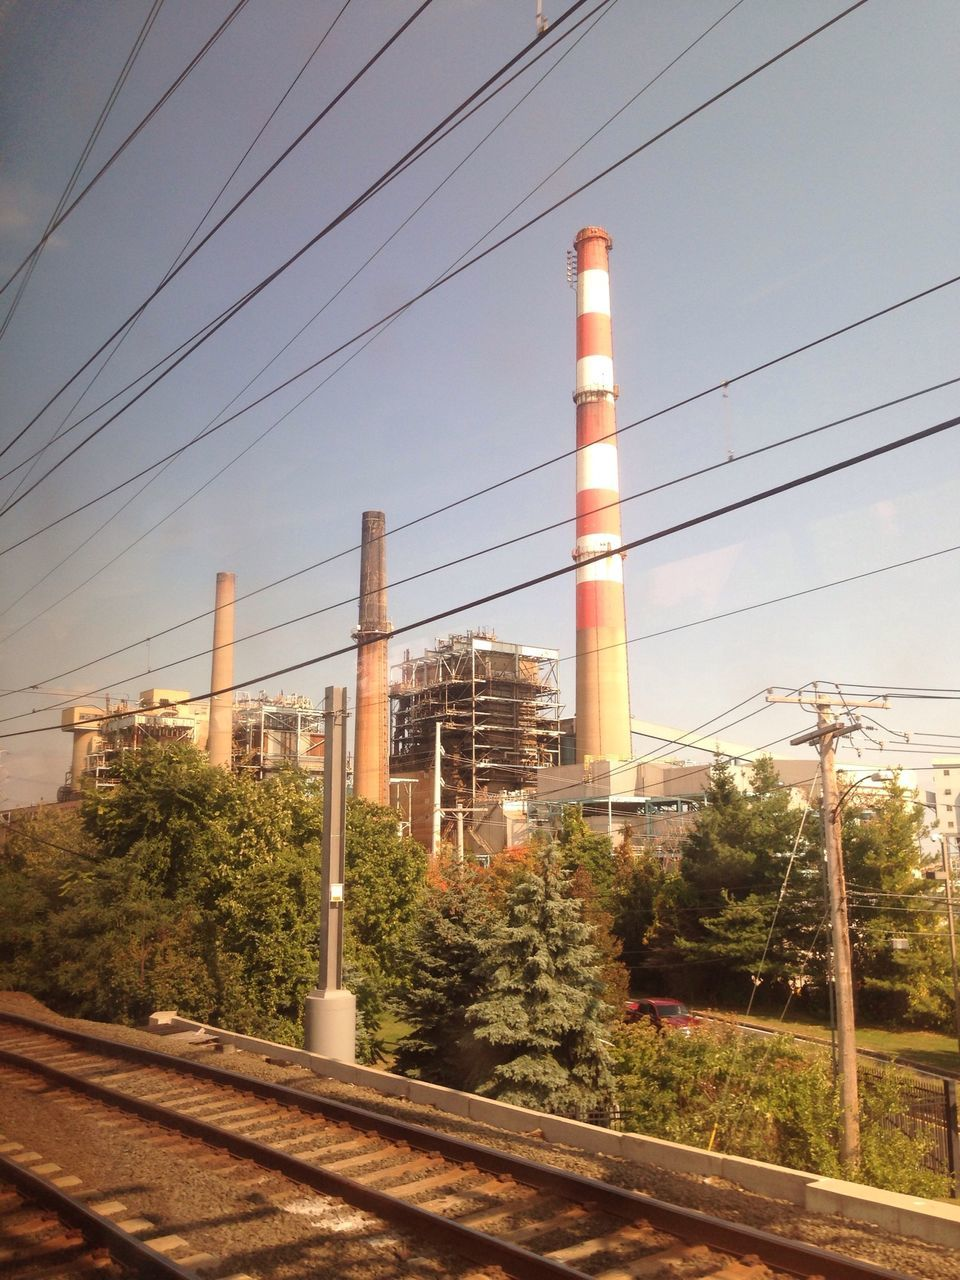 cable, connection, tree, power line, no people, electricity pylon, electricity, fuel and power generation, architecture, industry, railroad track, built structure, factory, smoke stack, sky, outdoors, clear sky, day